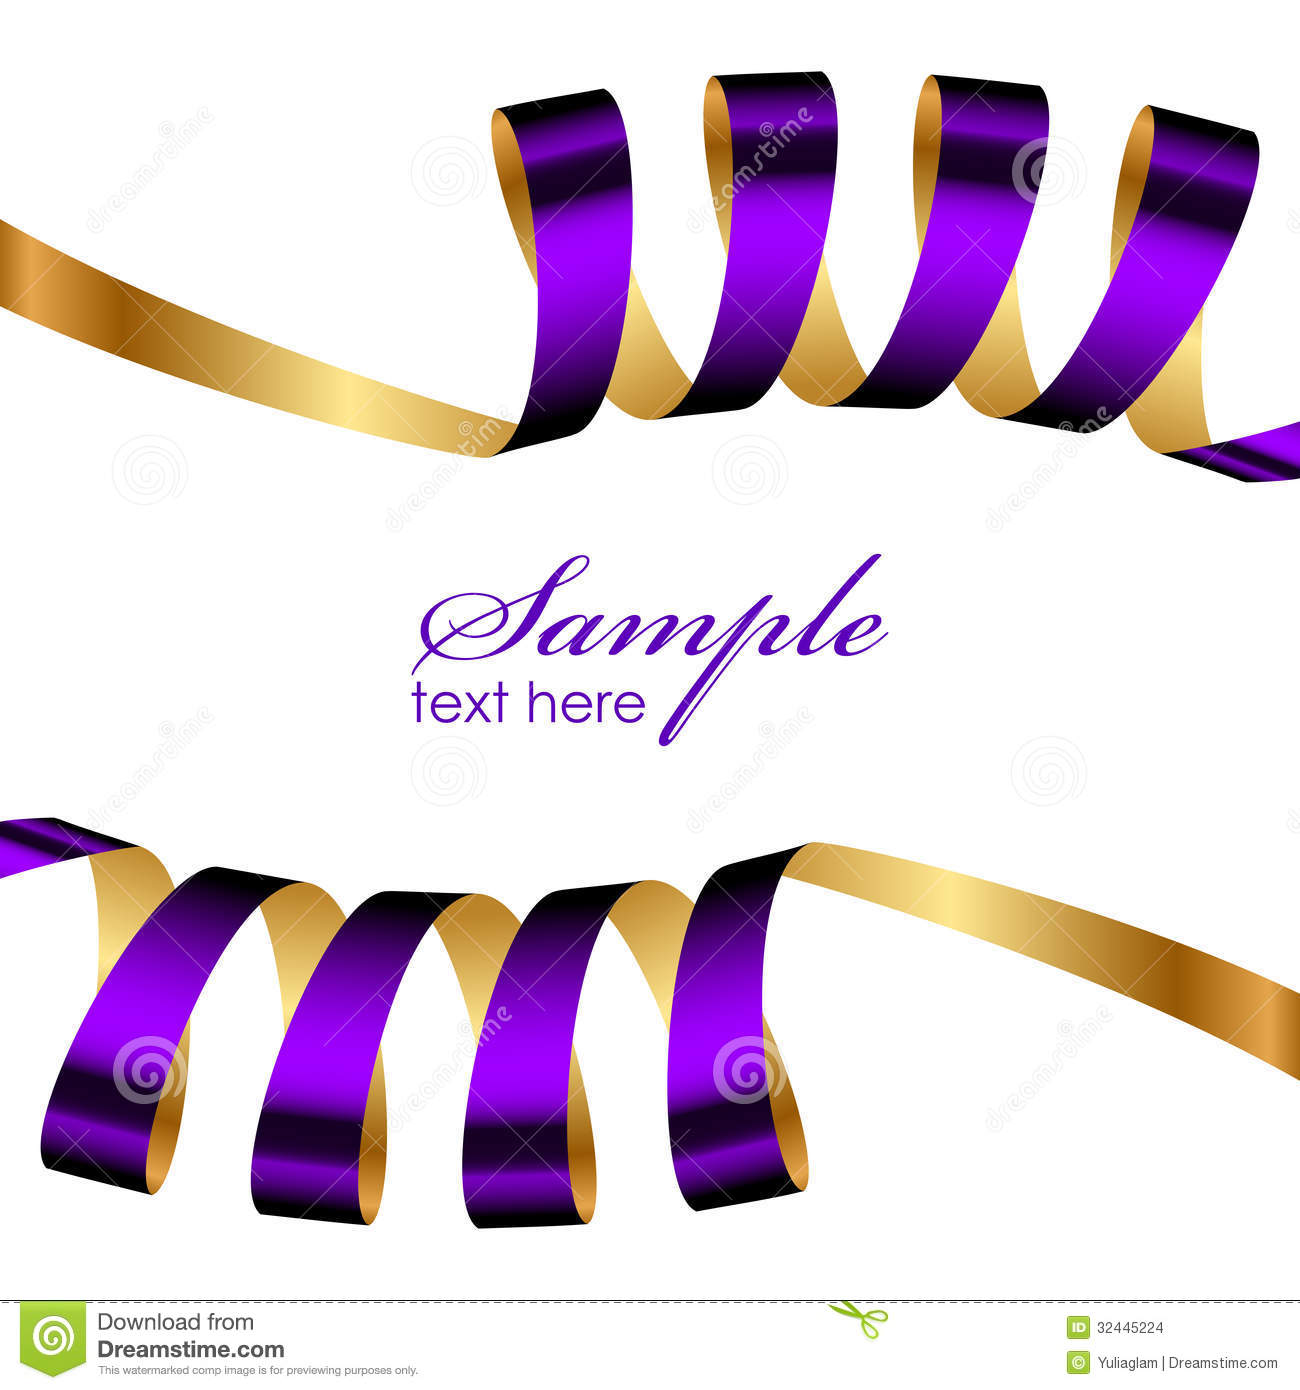 Chevron Quote Wallpaper 13 Purple And Gold Frame Design Images Blue And Gold